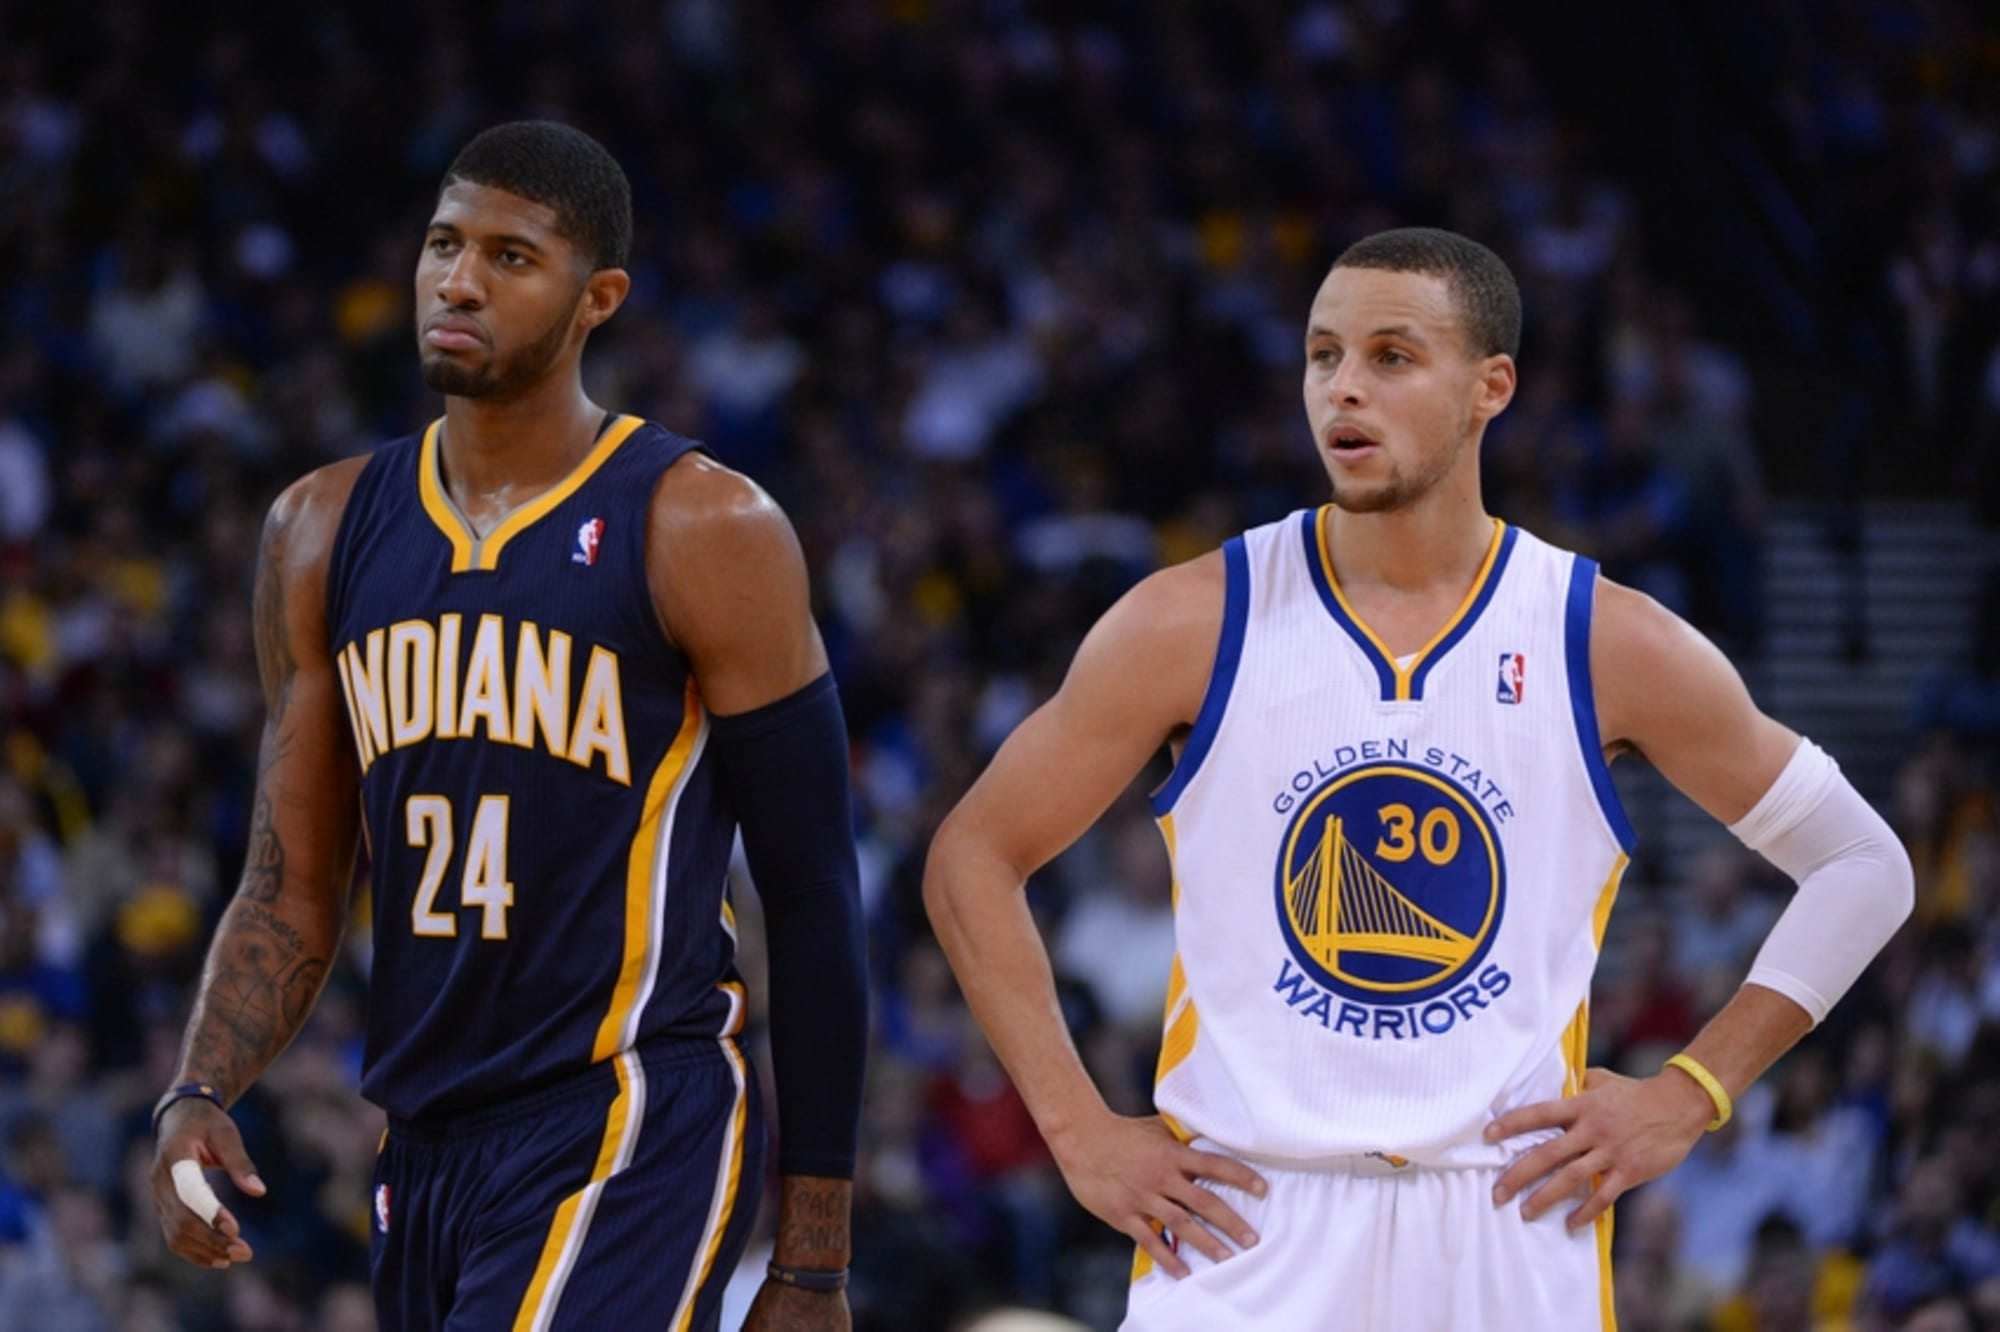 Indiana Pacers vs the Warriors ...